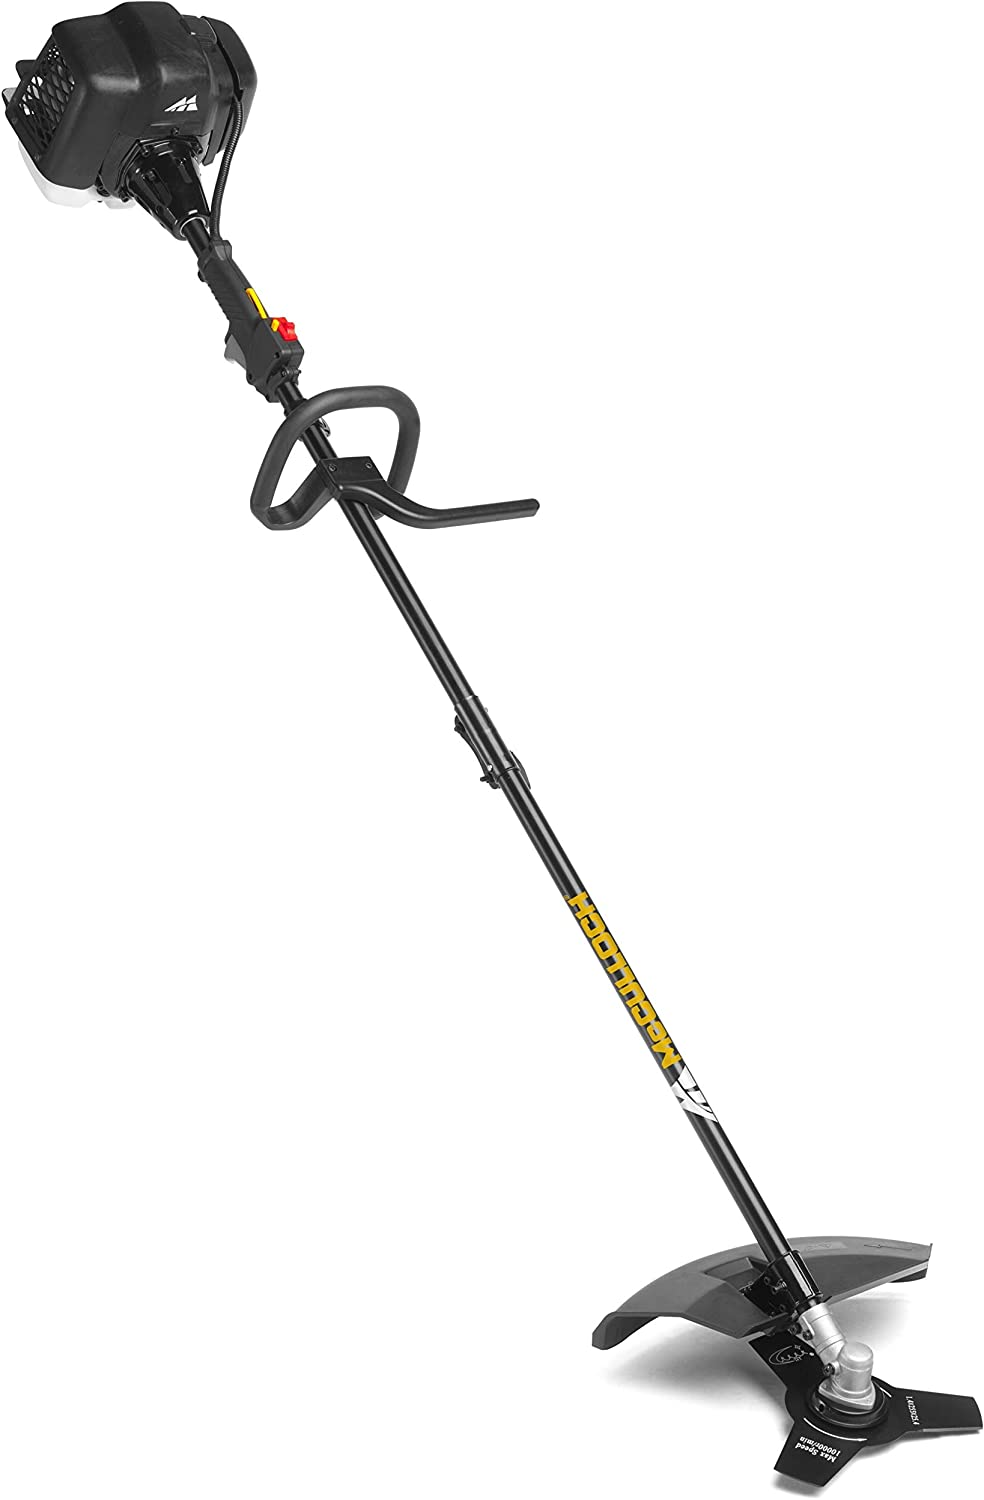 McCulloch B33 PS, Petrol Brush Cutter, 3